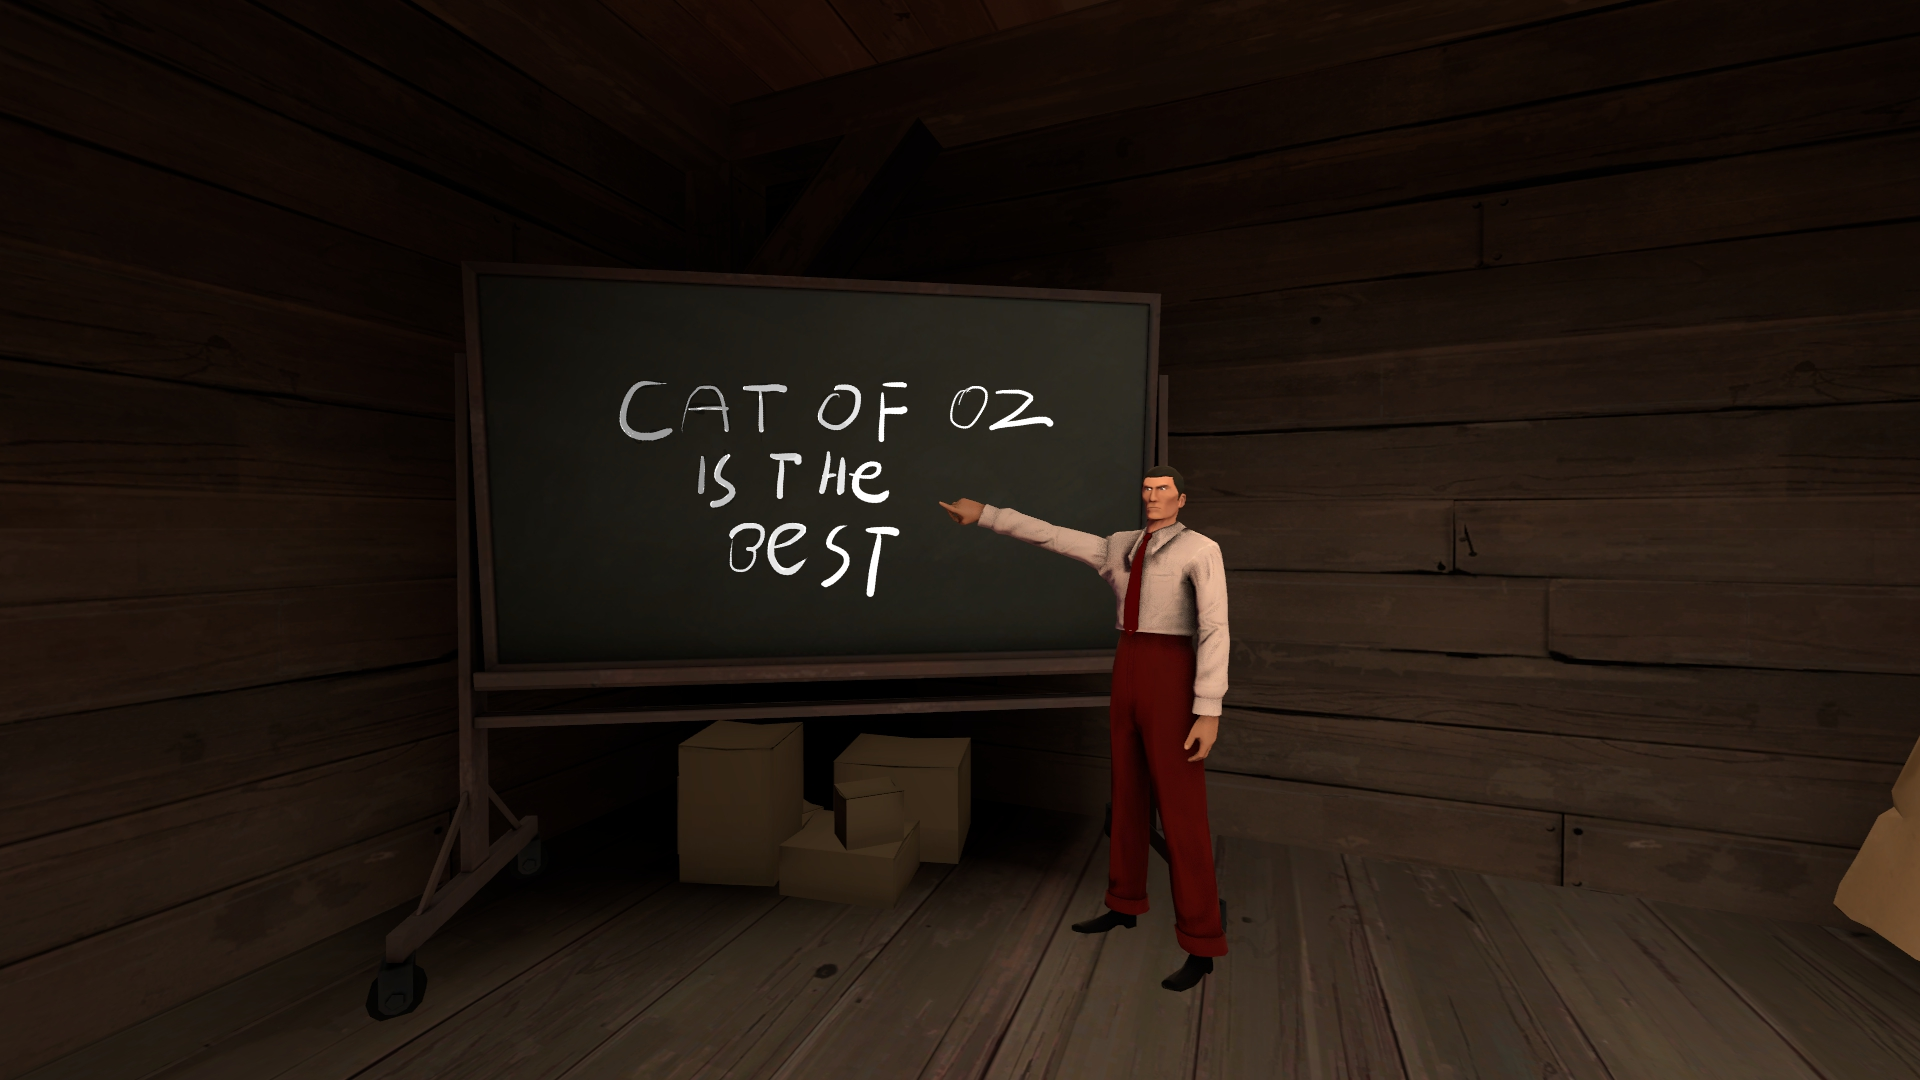 Cat Of Oz Is The Best by catofoz